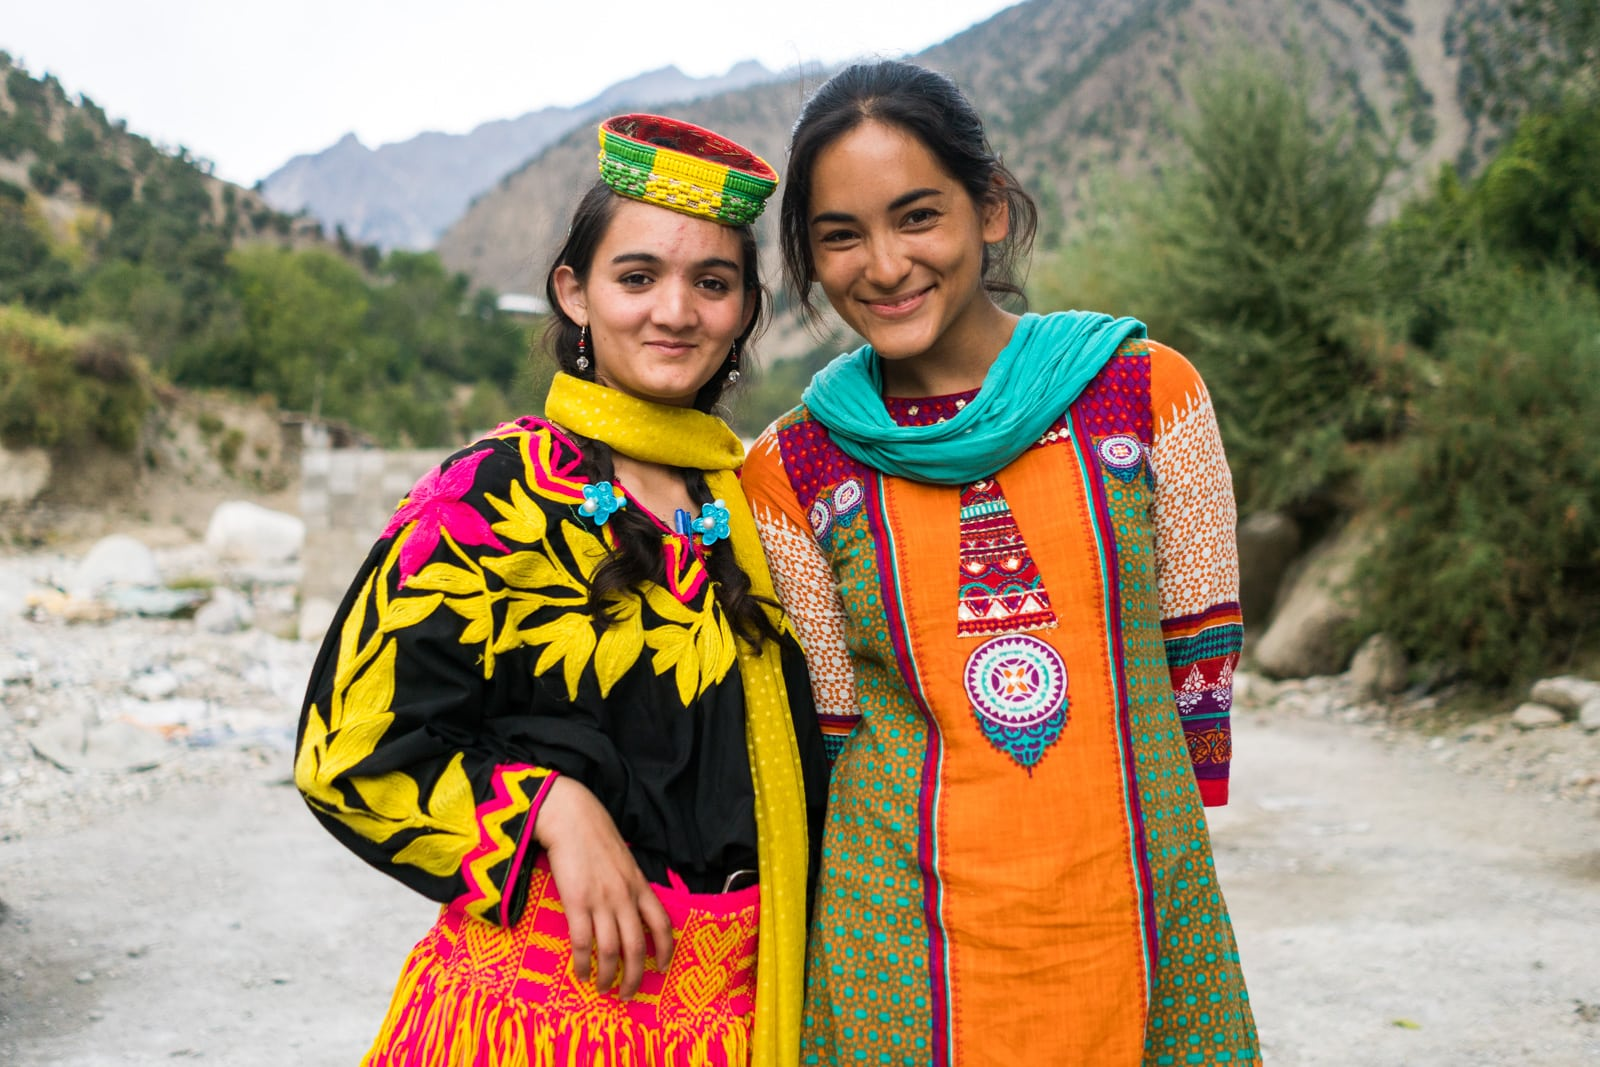 Responsible tourism in the Kalash Valleys of Pakistan - Posing with a Kalasha girl for a photo - Lost With Purpose travel blog